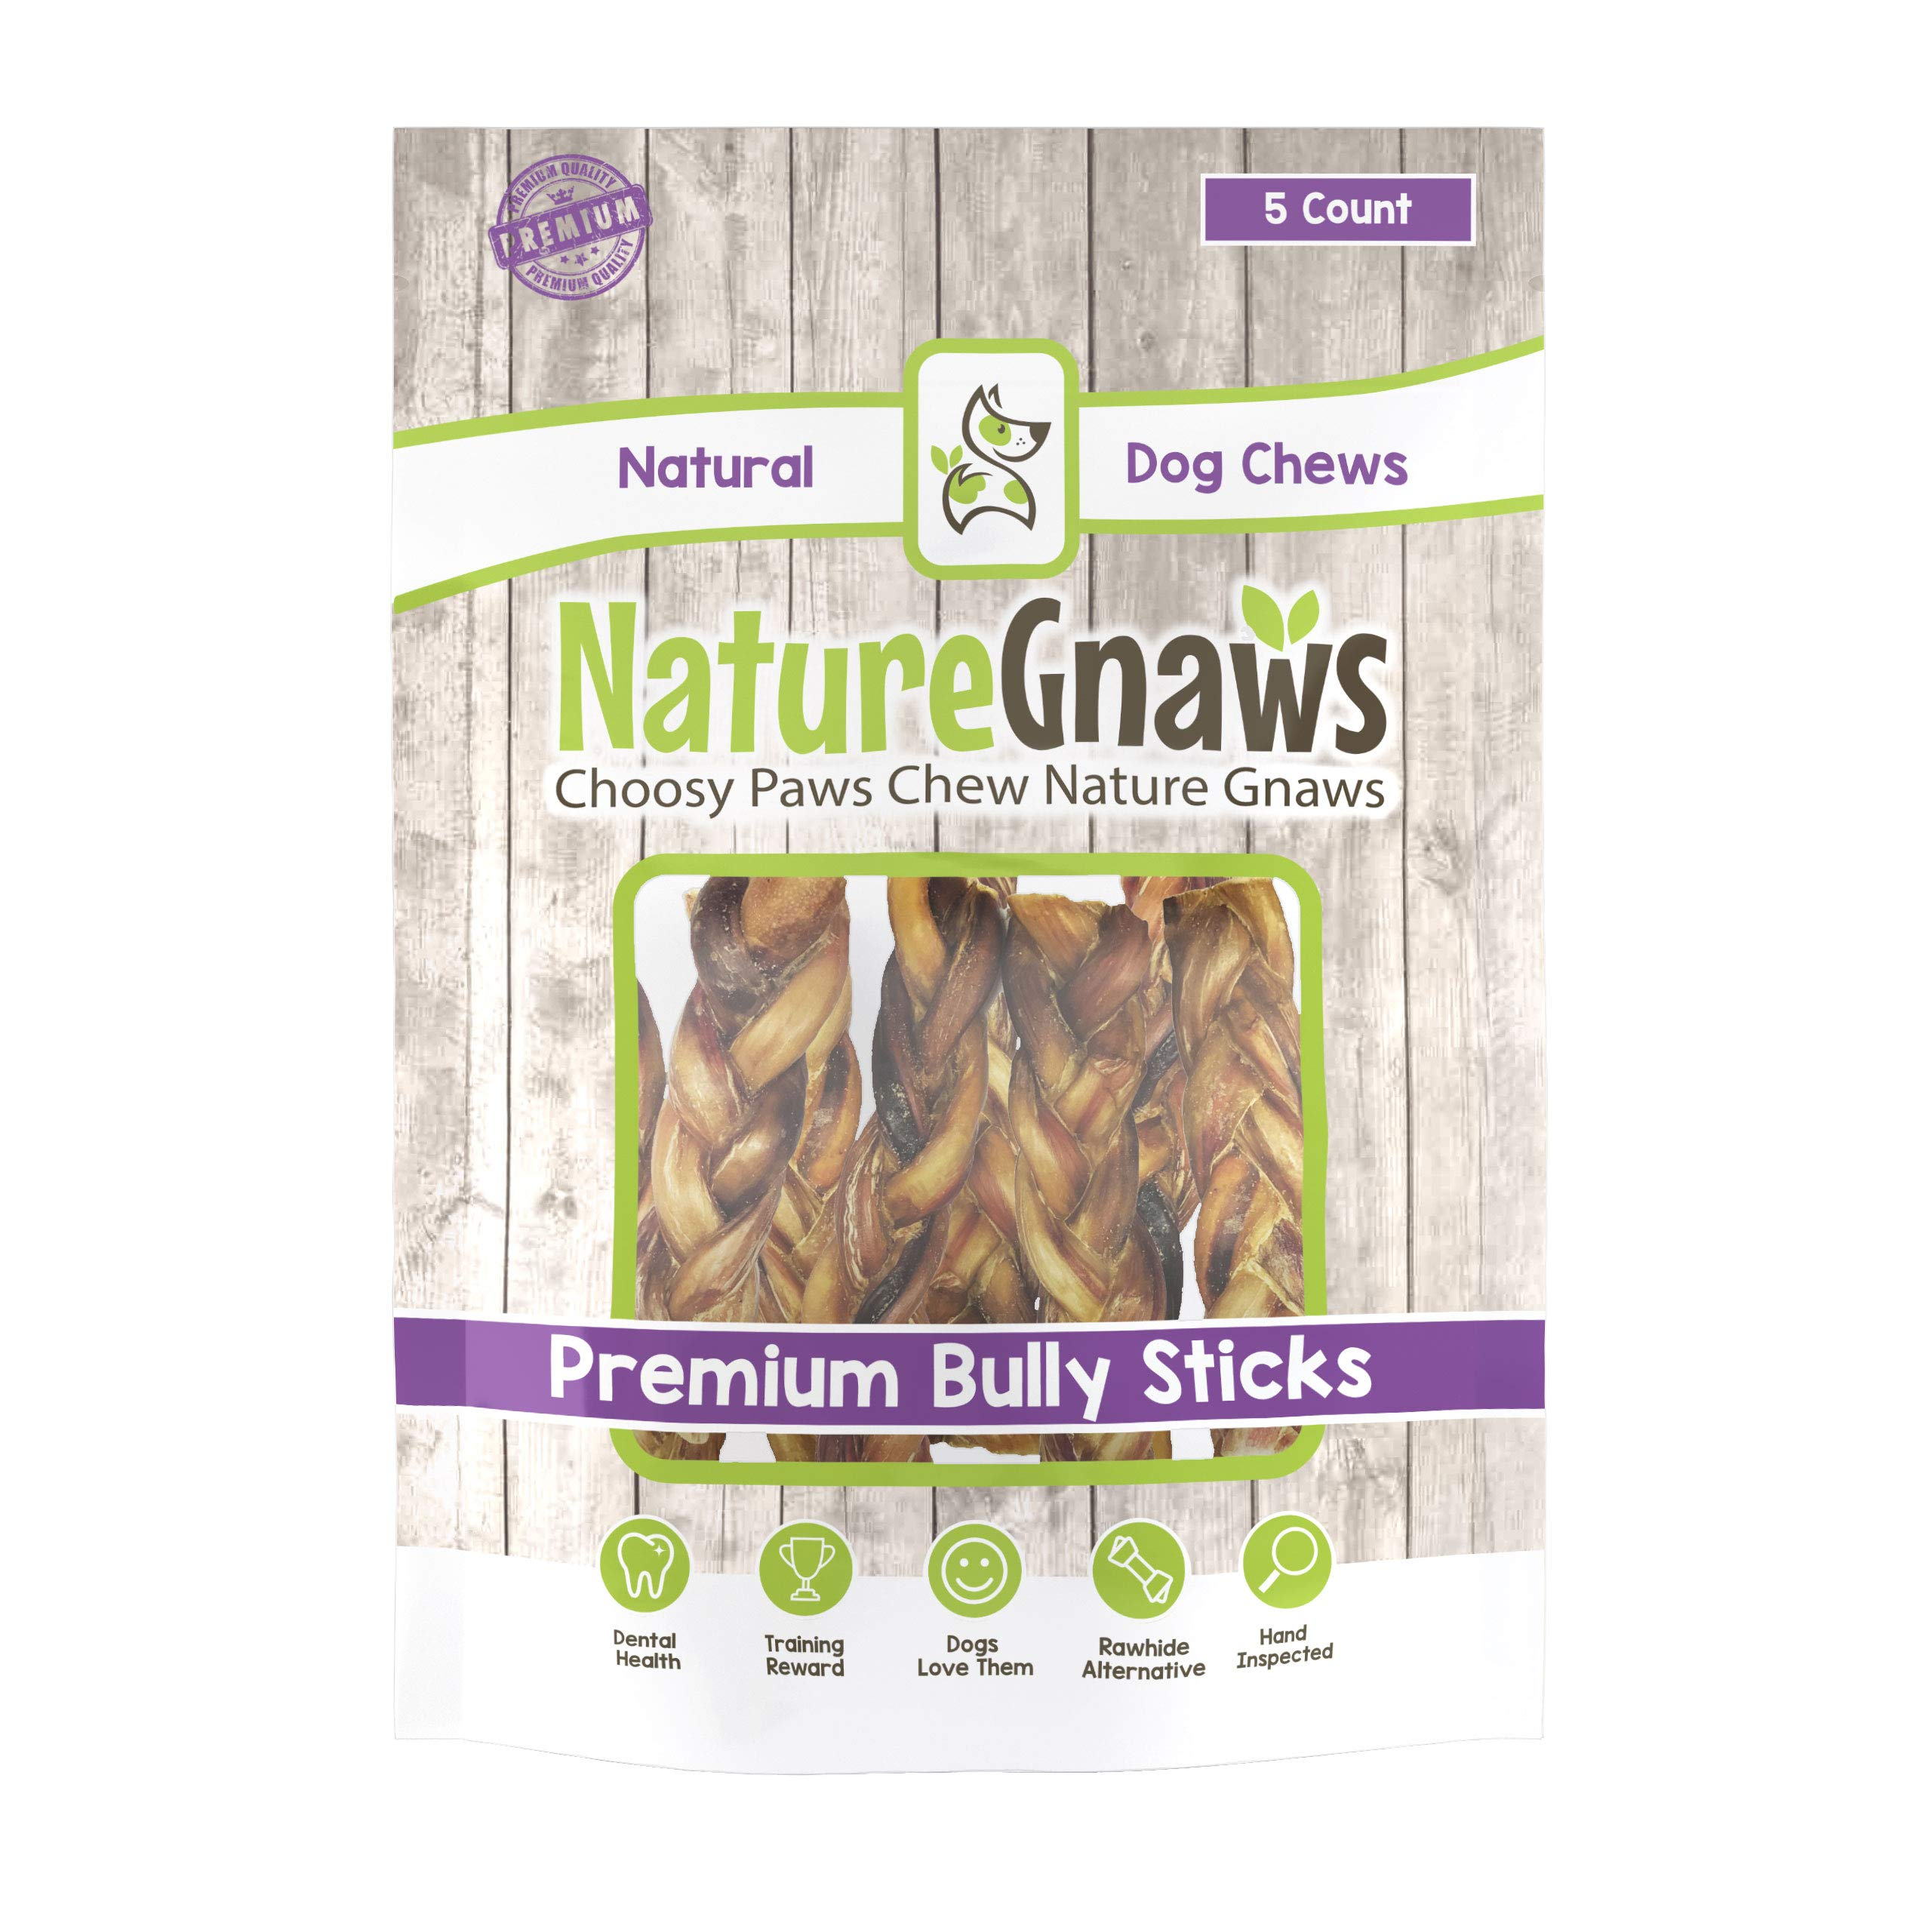 Nature Gnaws Braided Bully Sticks 5-6 inch (5 Pack) - 100% Natural Grass-Fed Beef Dog Chews by Nature Gnaws